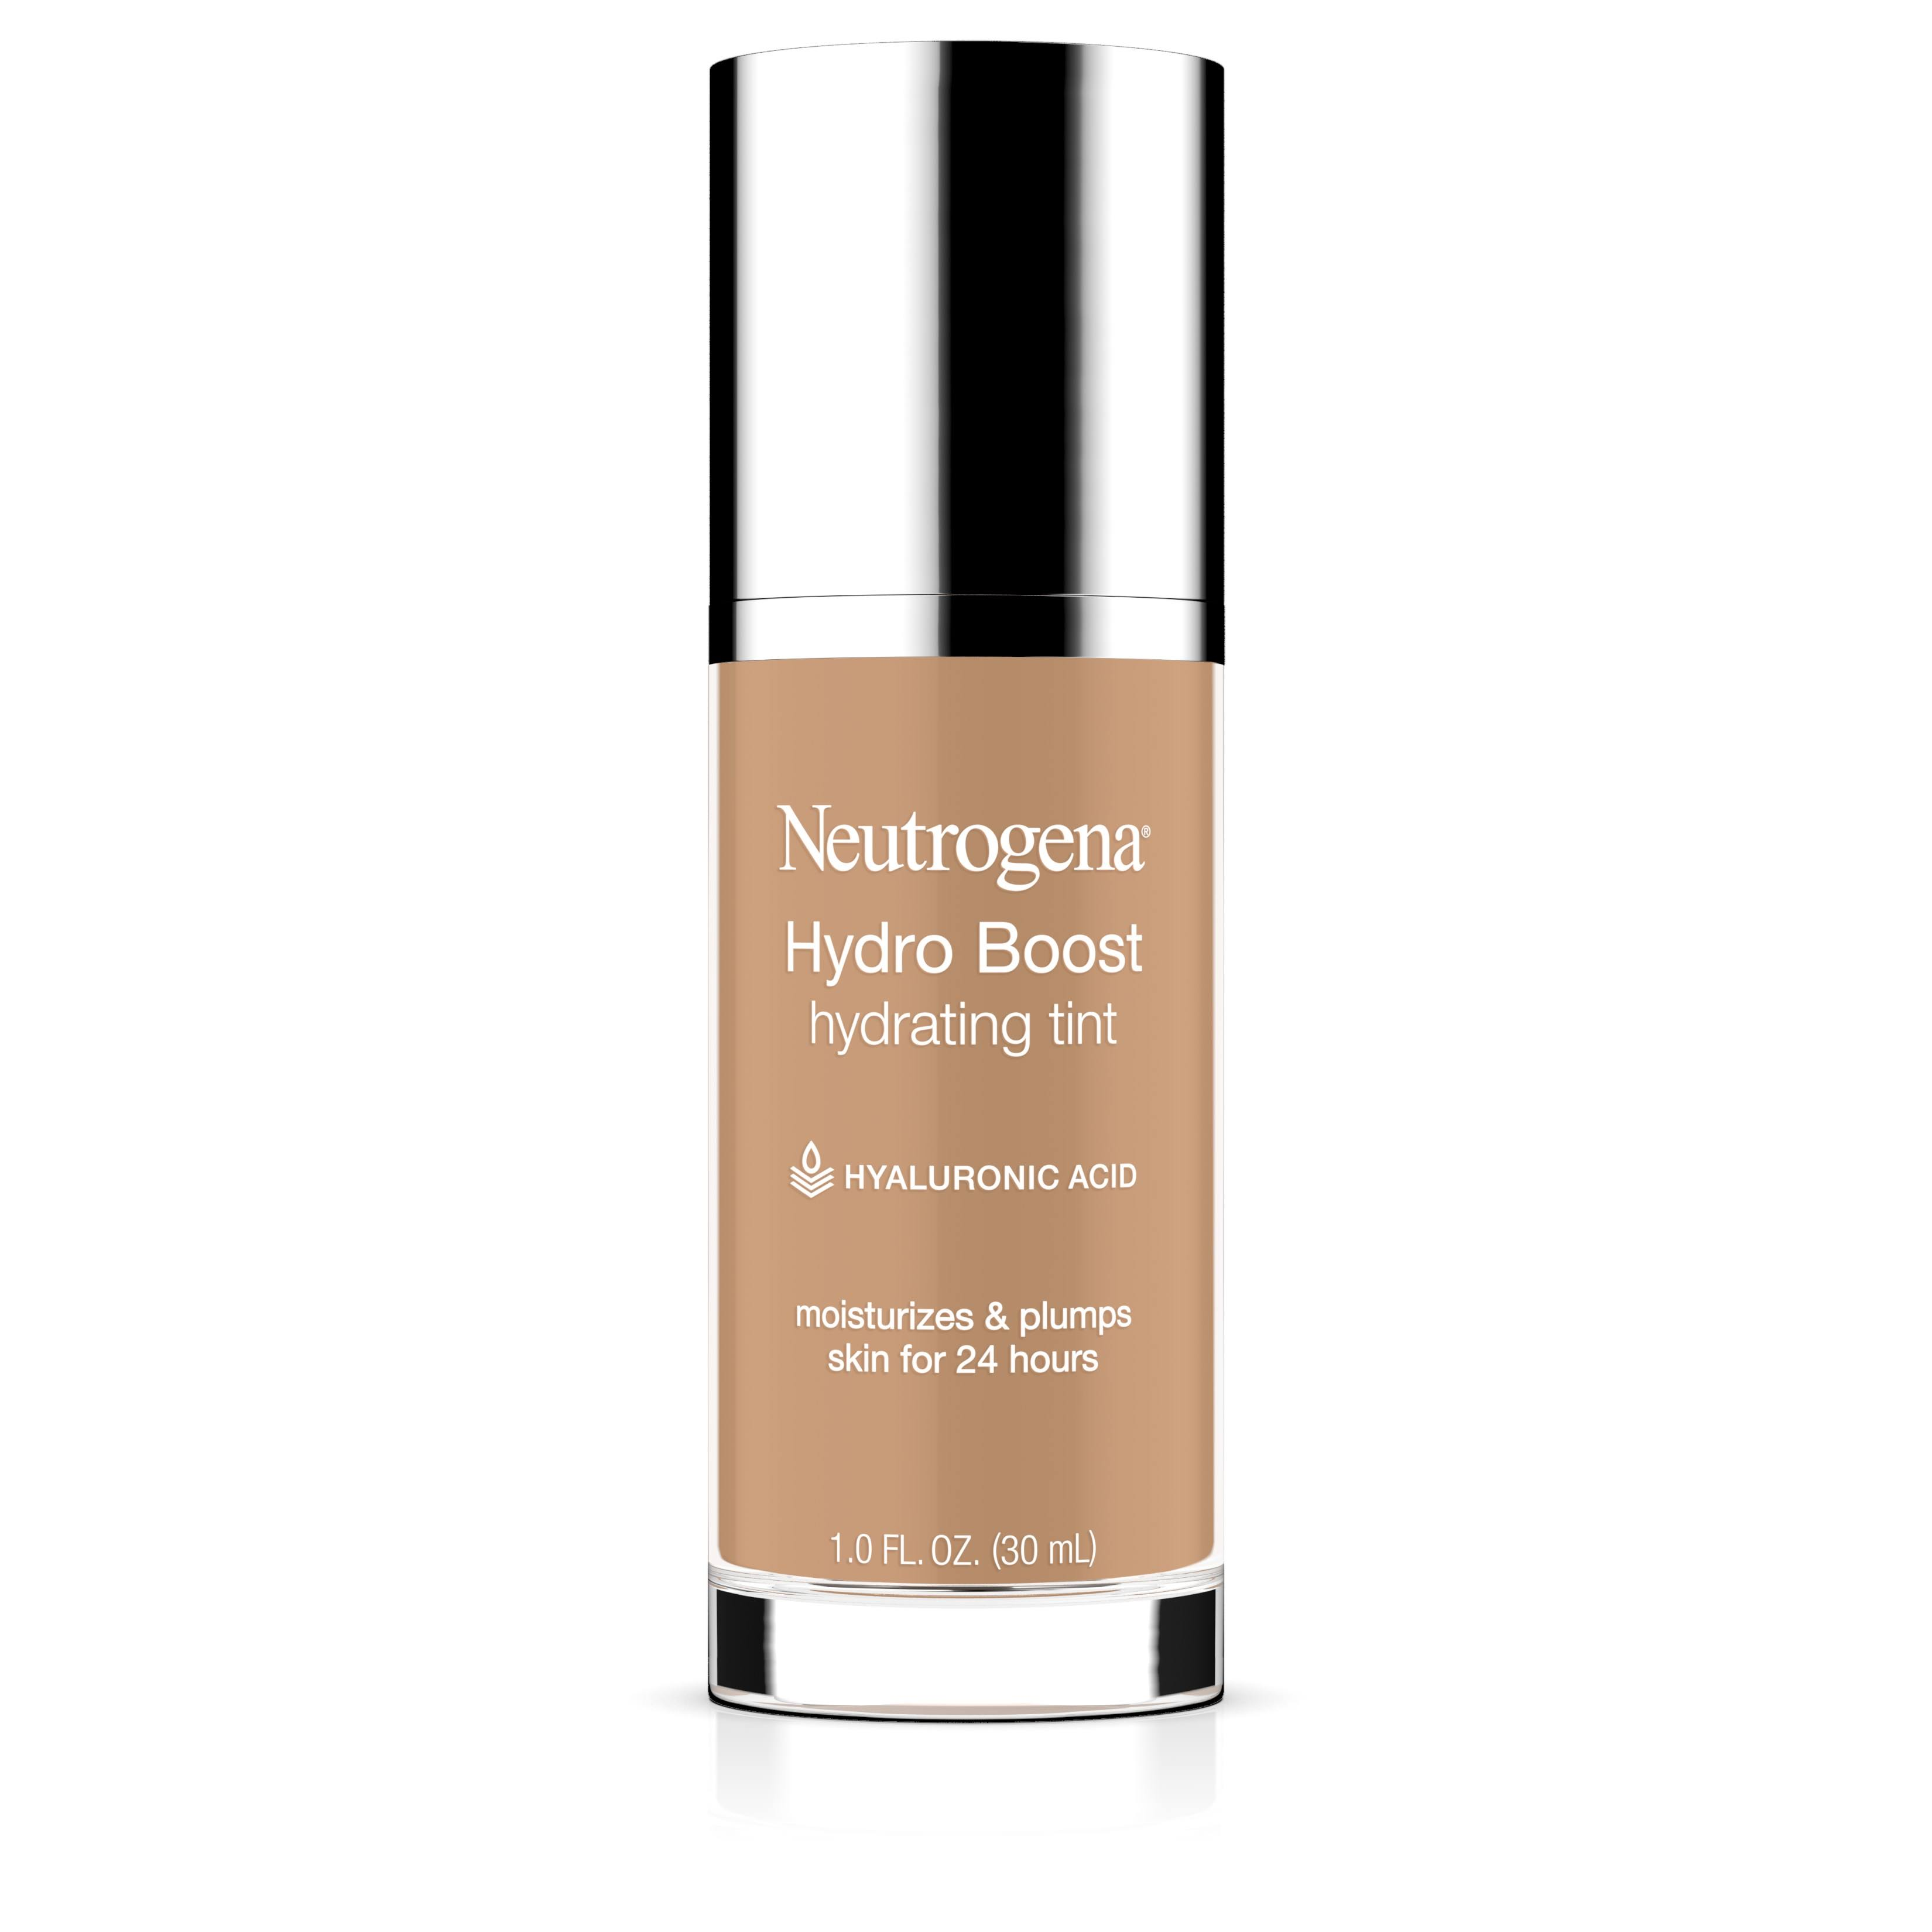 Neutrogena Hydro Boost Hydrating Tint - 60 Natural Beige, 1oz